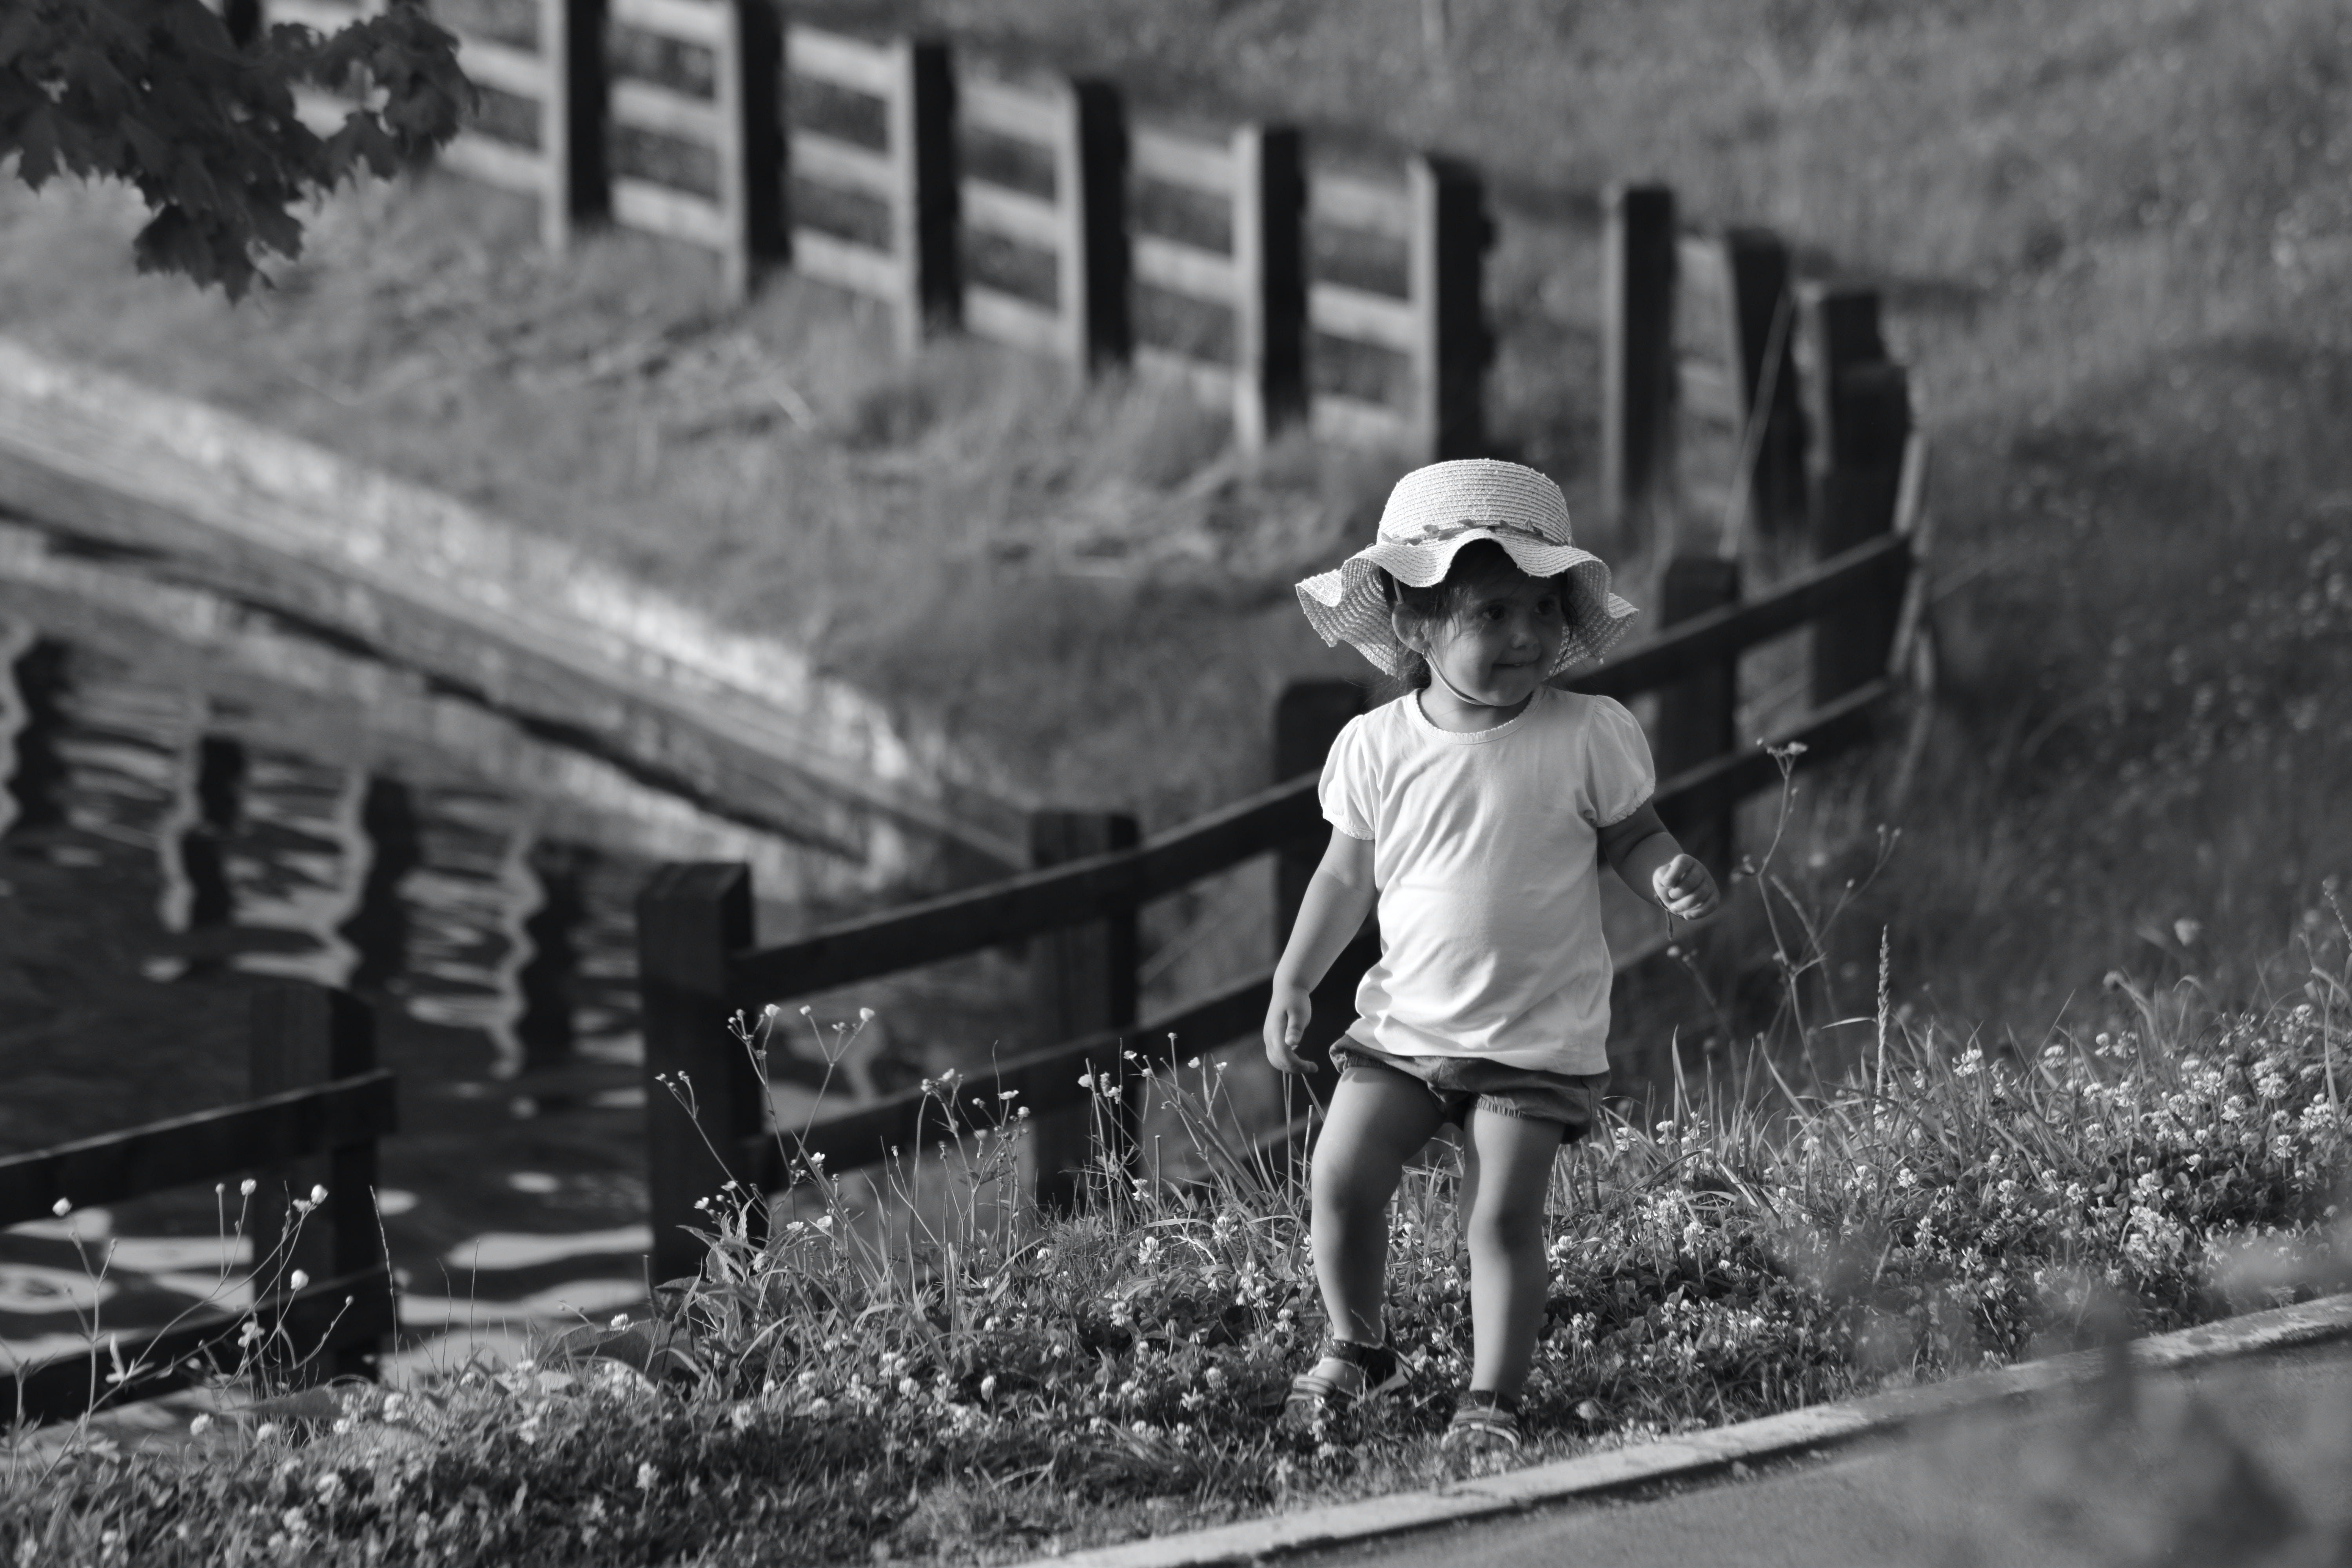 Monochrome Photography of Toddler On Flowers